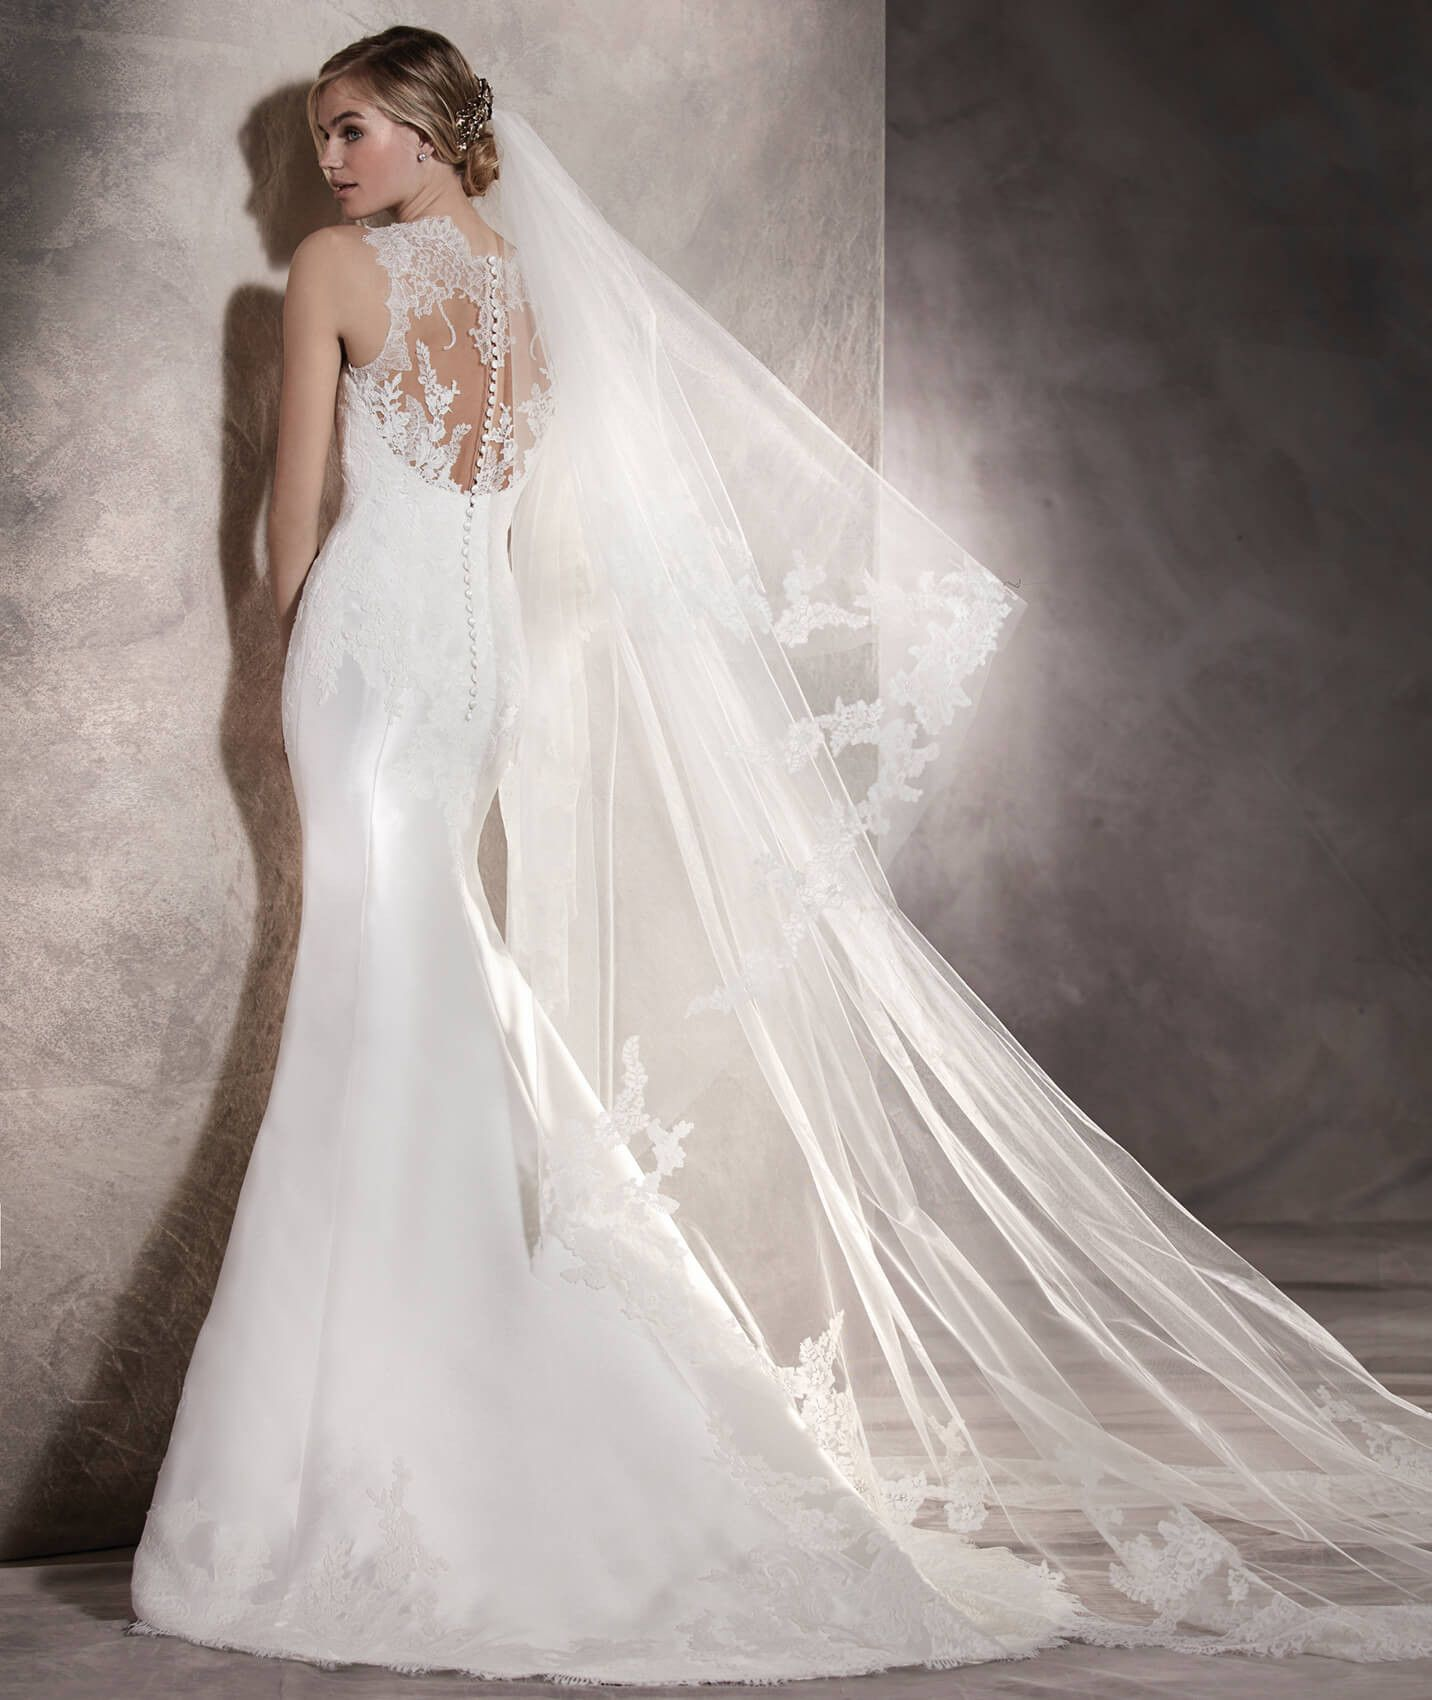 Mermaid Wedding Dress In Mikado, Lace And Tulle